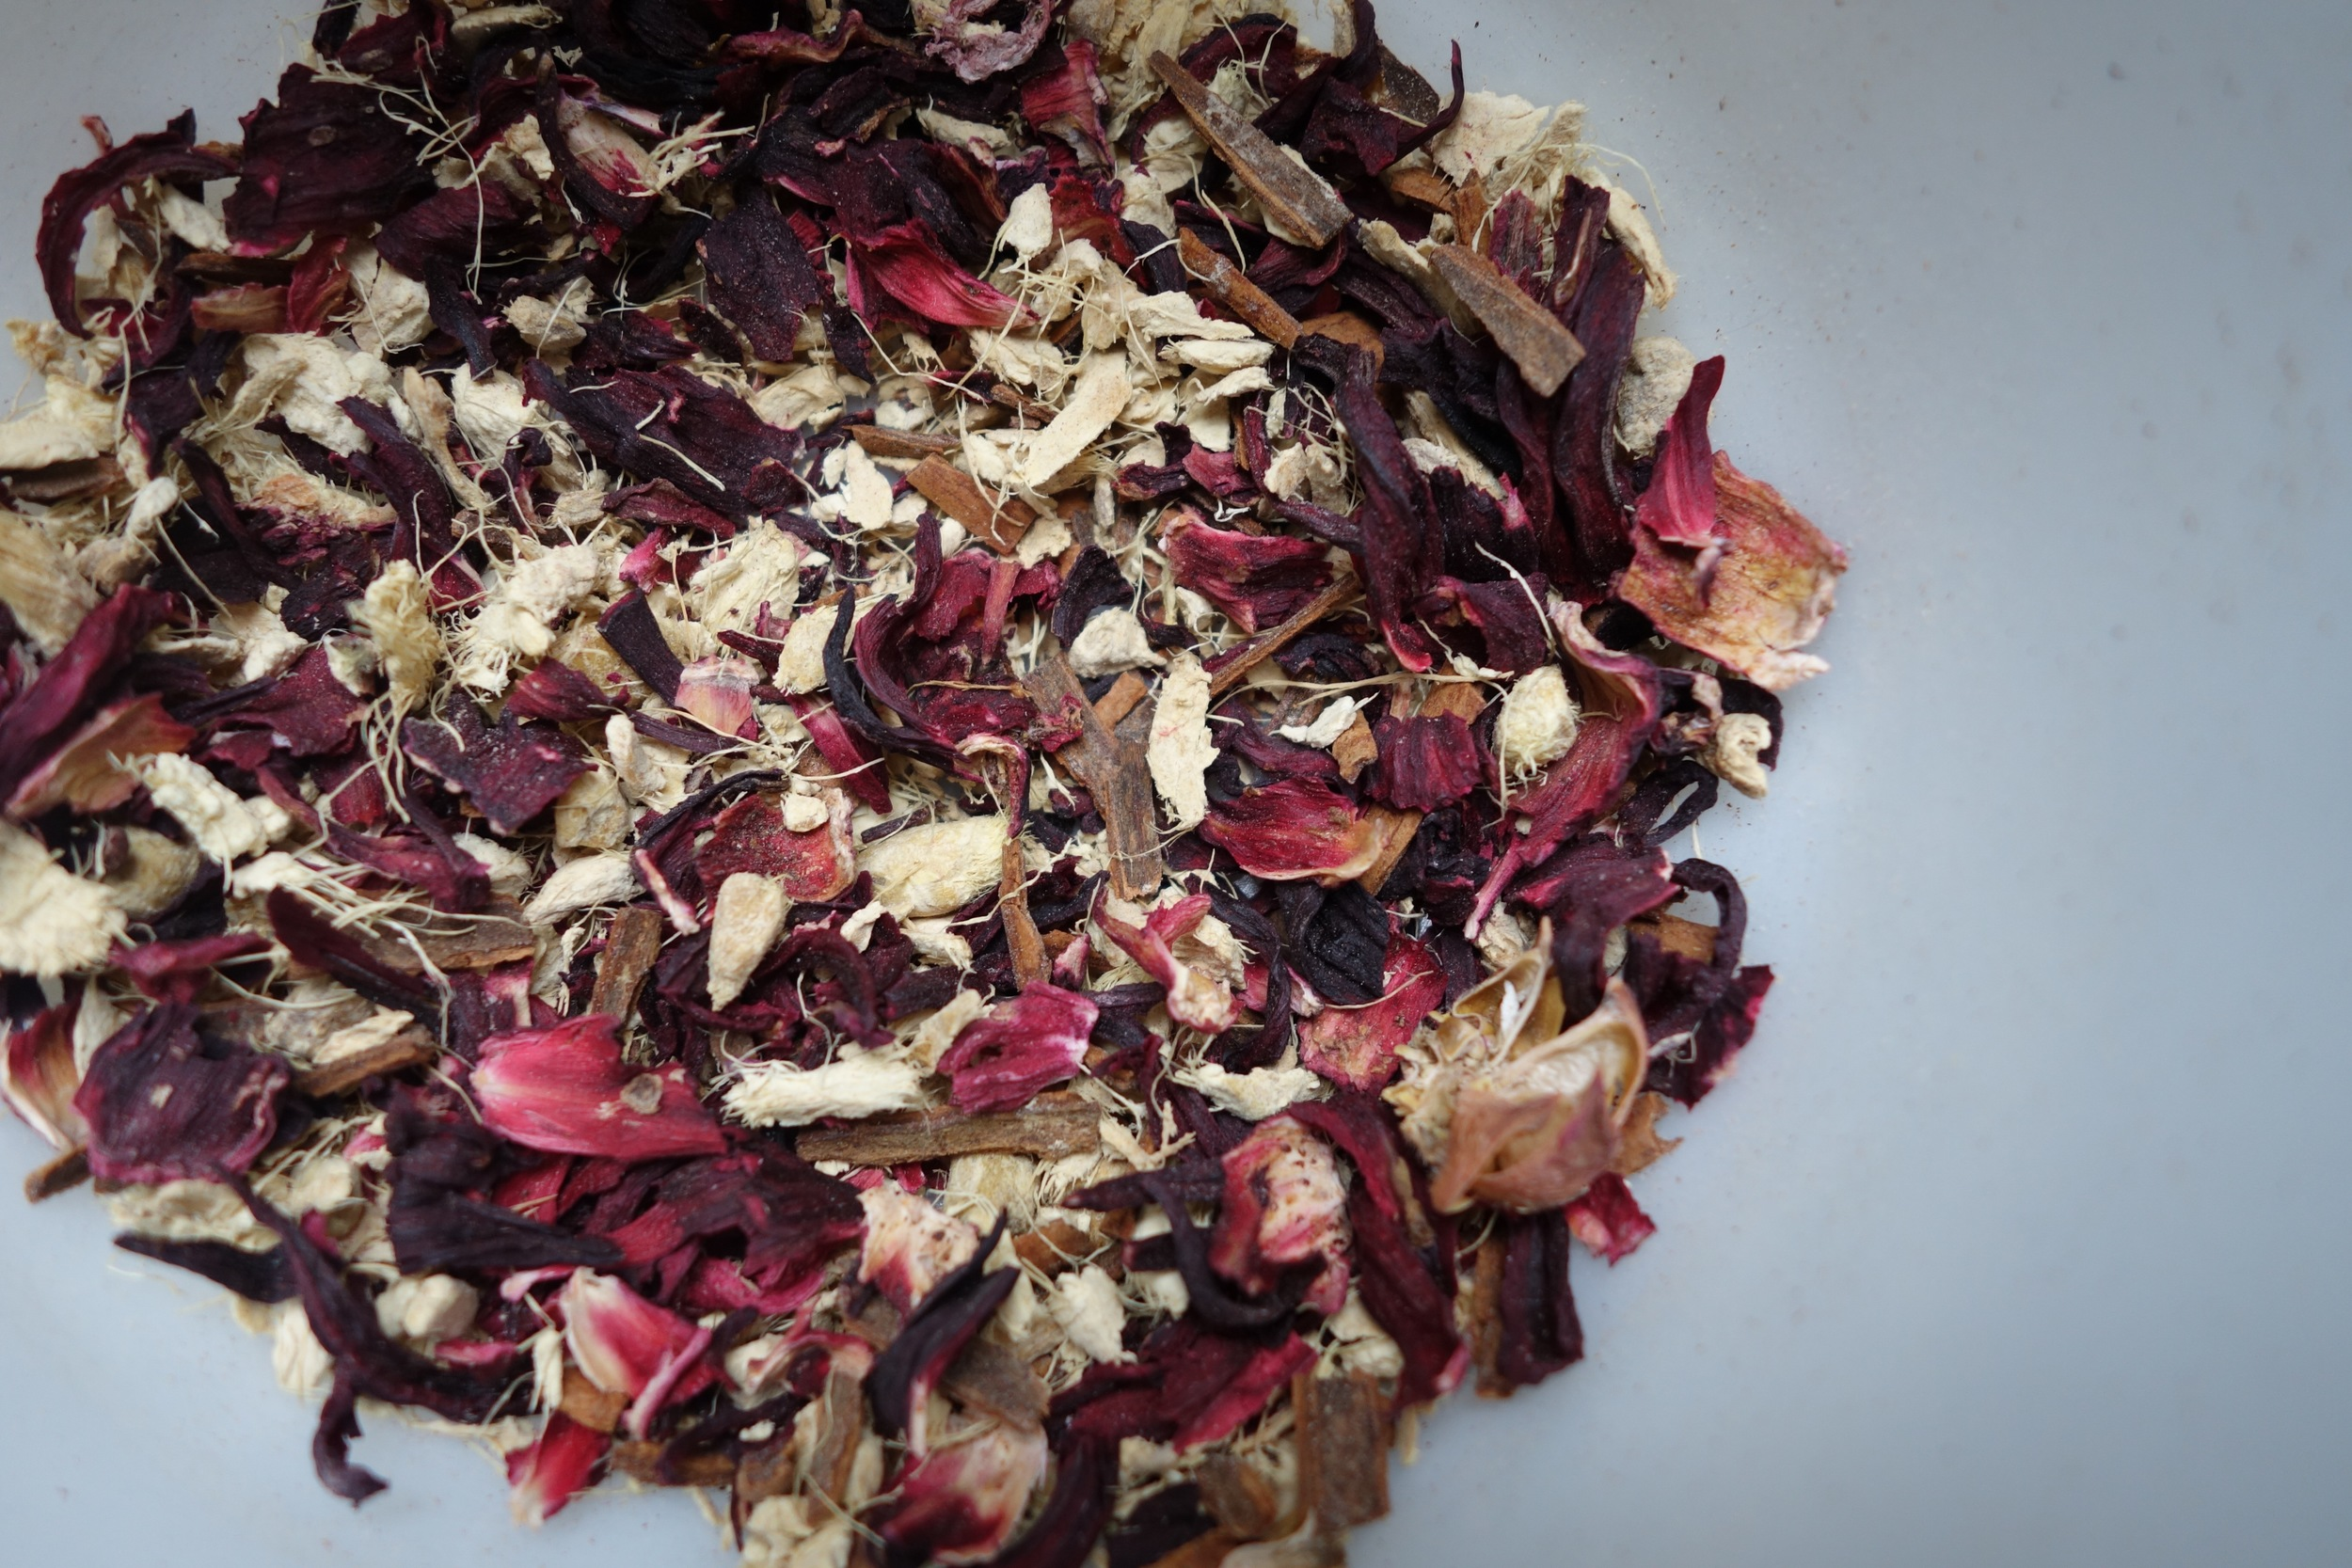 This is a digestive and purifying tonic made with hibiscus, ginger root, and cinnamon.